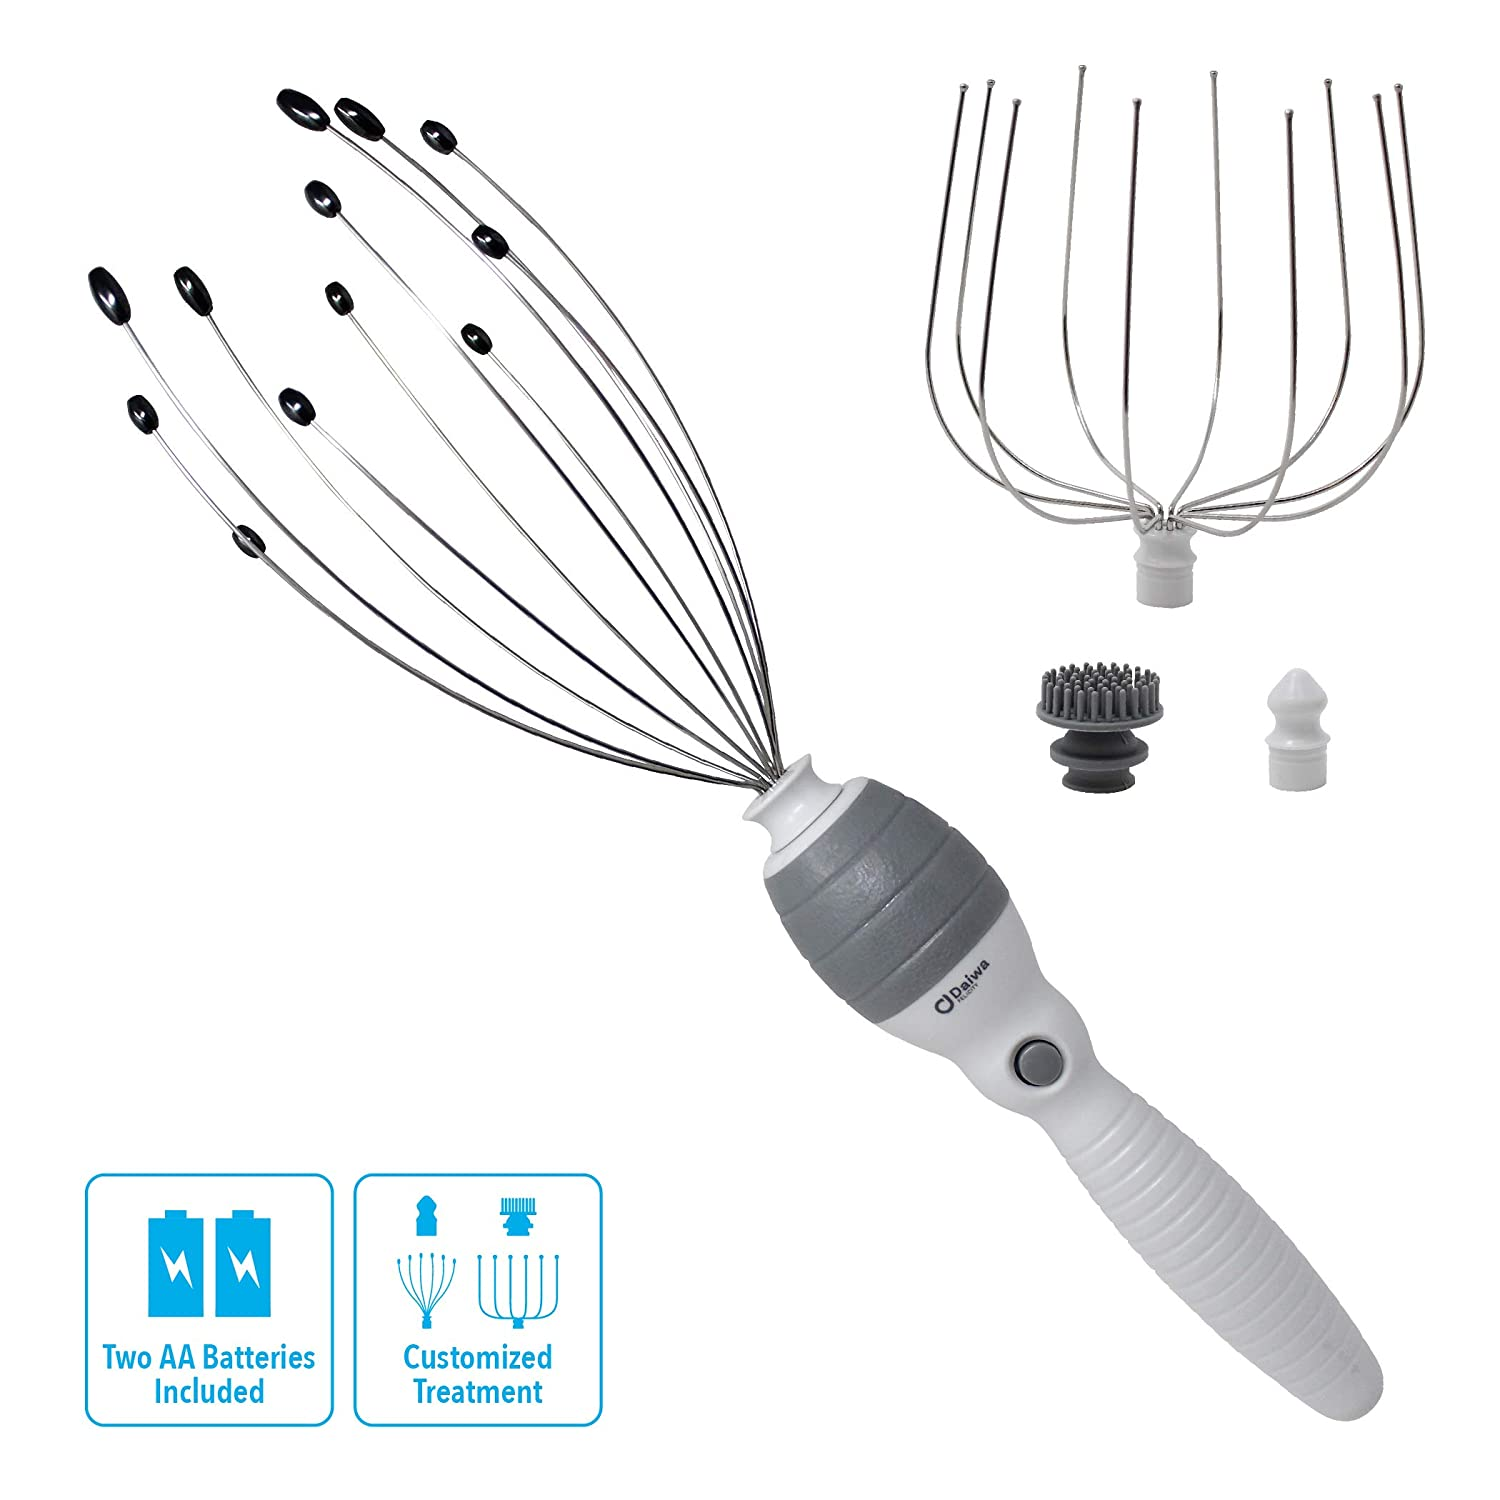 Daiwa Felicity 5-in-1 Electric Vibrating Head Scalp Massager Set [Updated 2019]